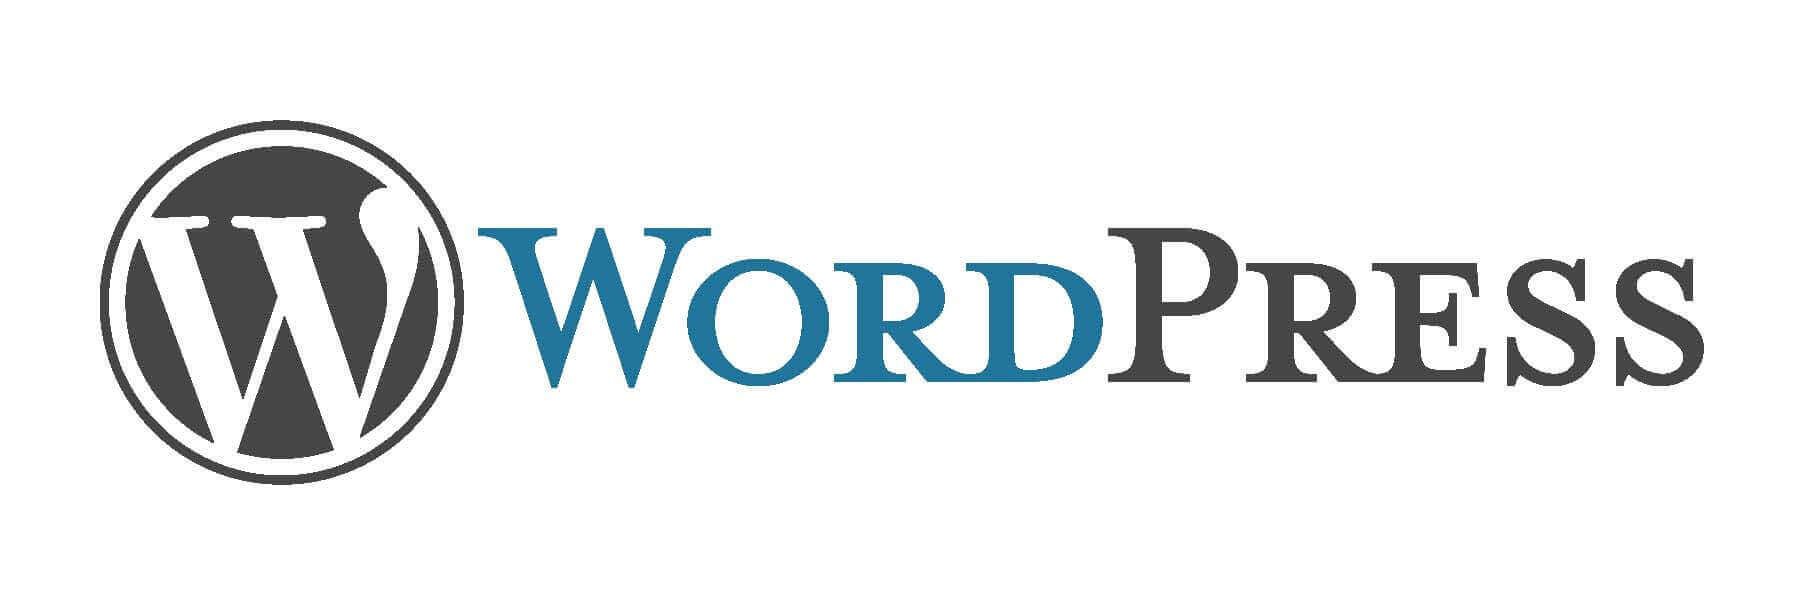 WordPress (LodiPlanting.com)